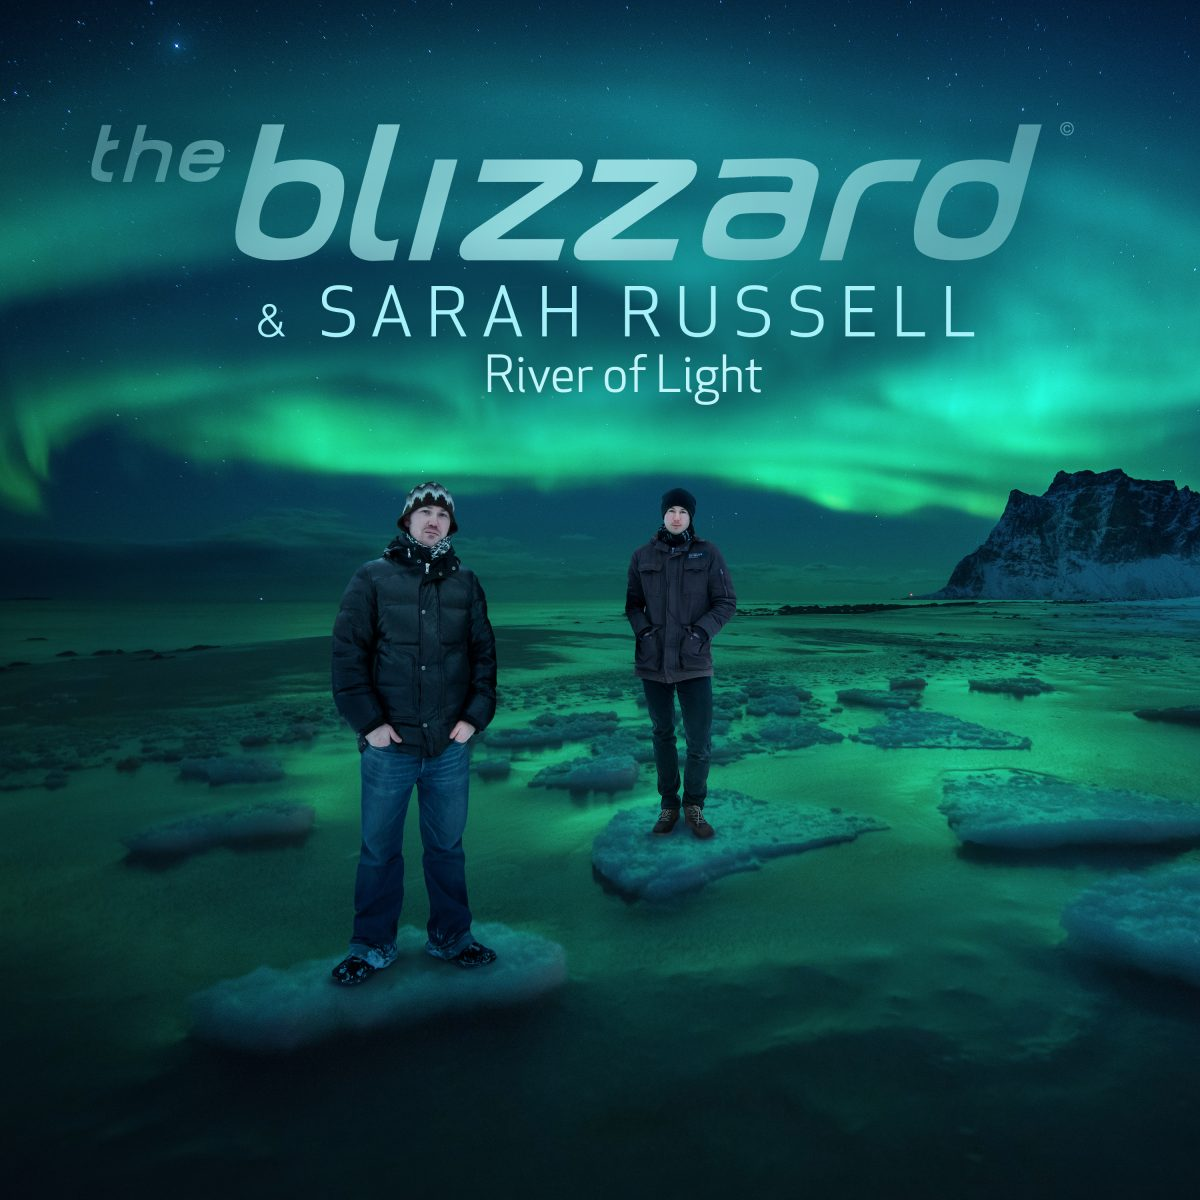 The Blizzard & Sarah Russell - River of Light on Raz Nitzan Music